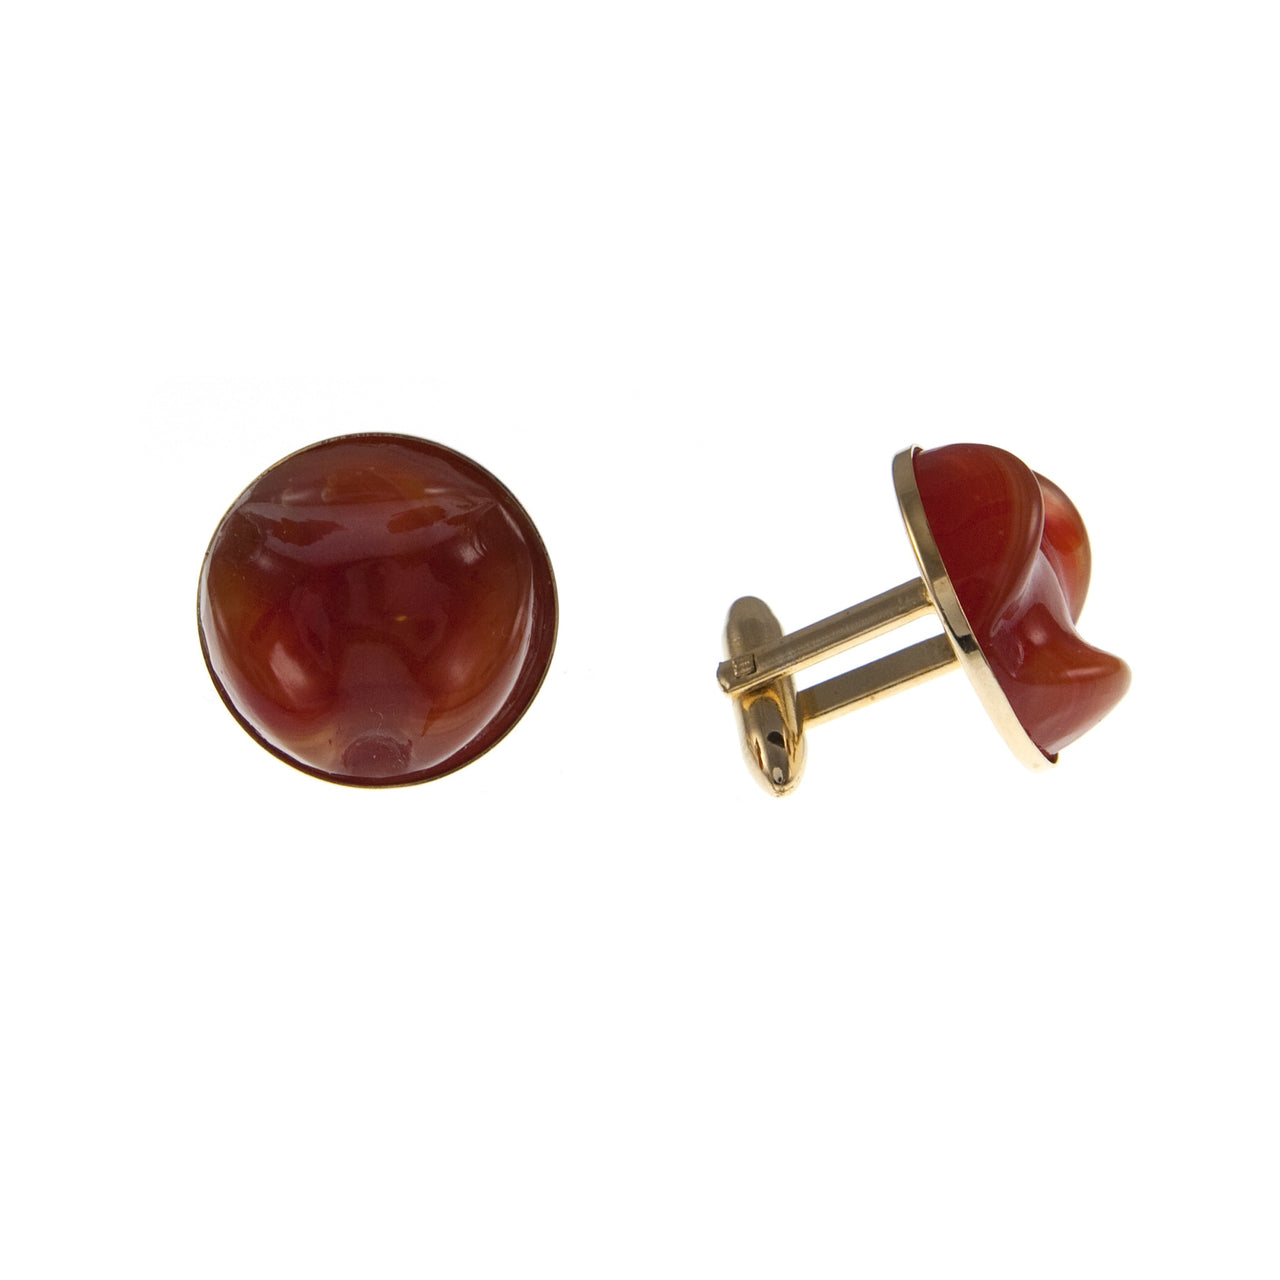 Terracotta Glass and Gold Plate Cufflinks, 1950s